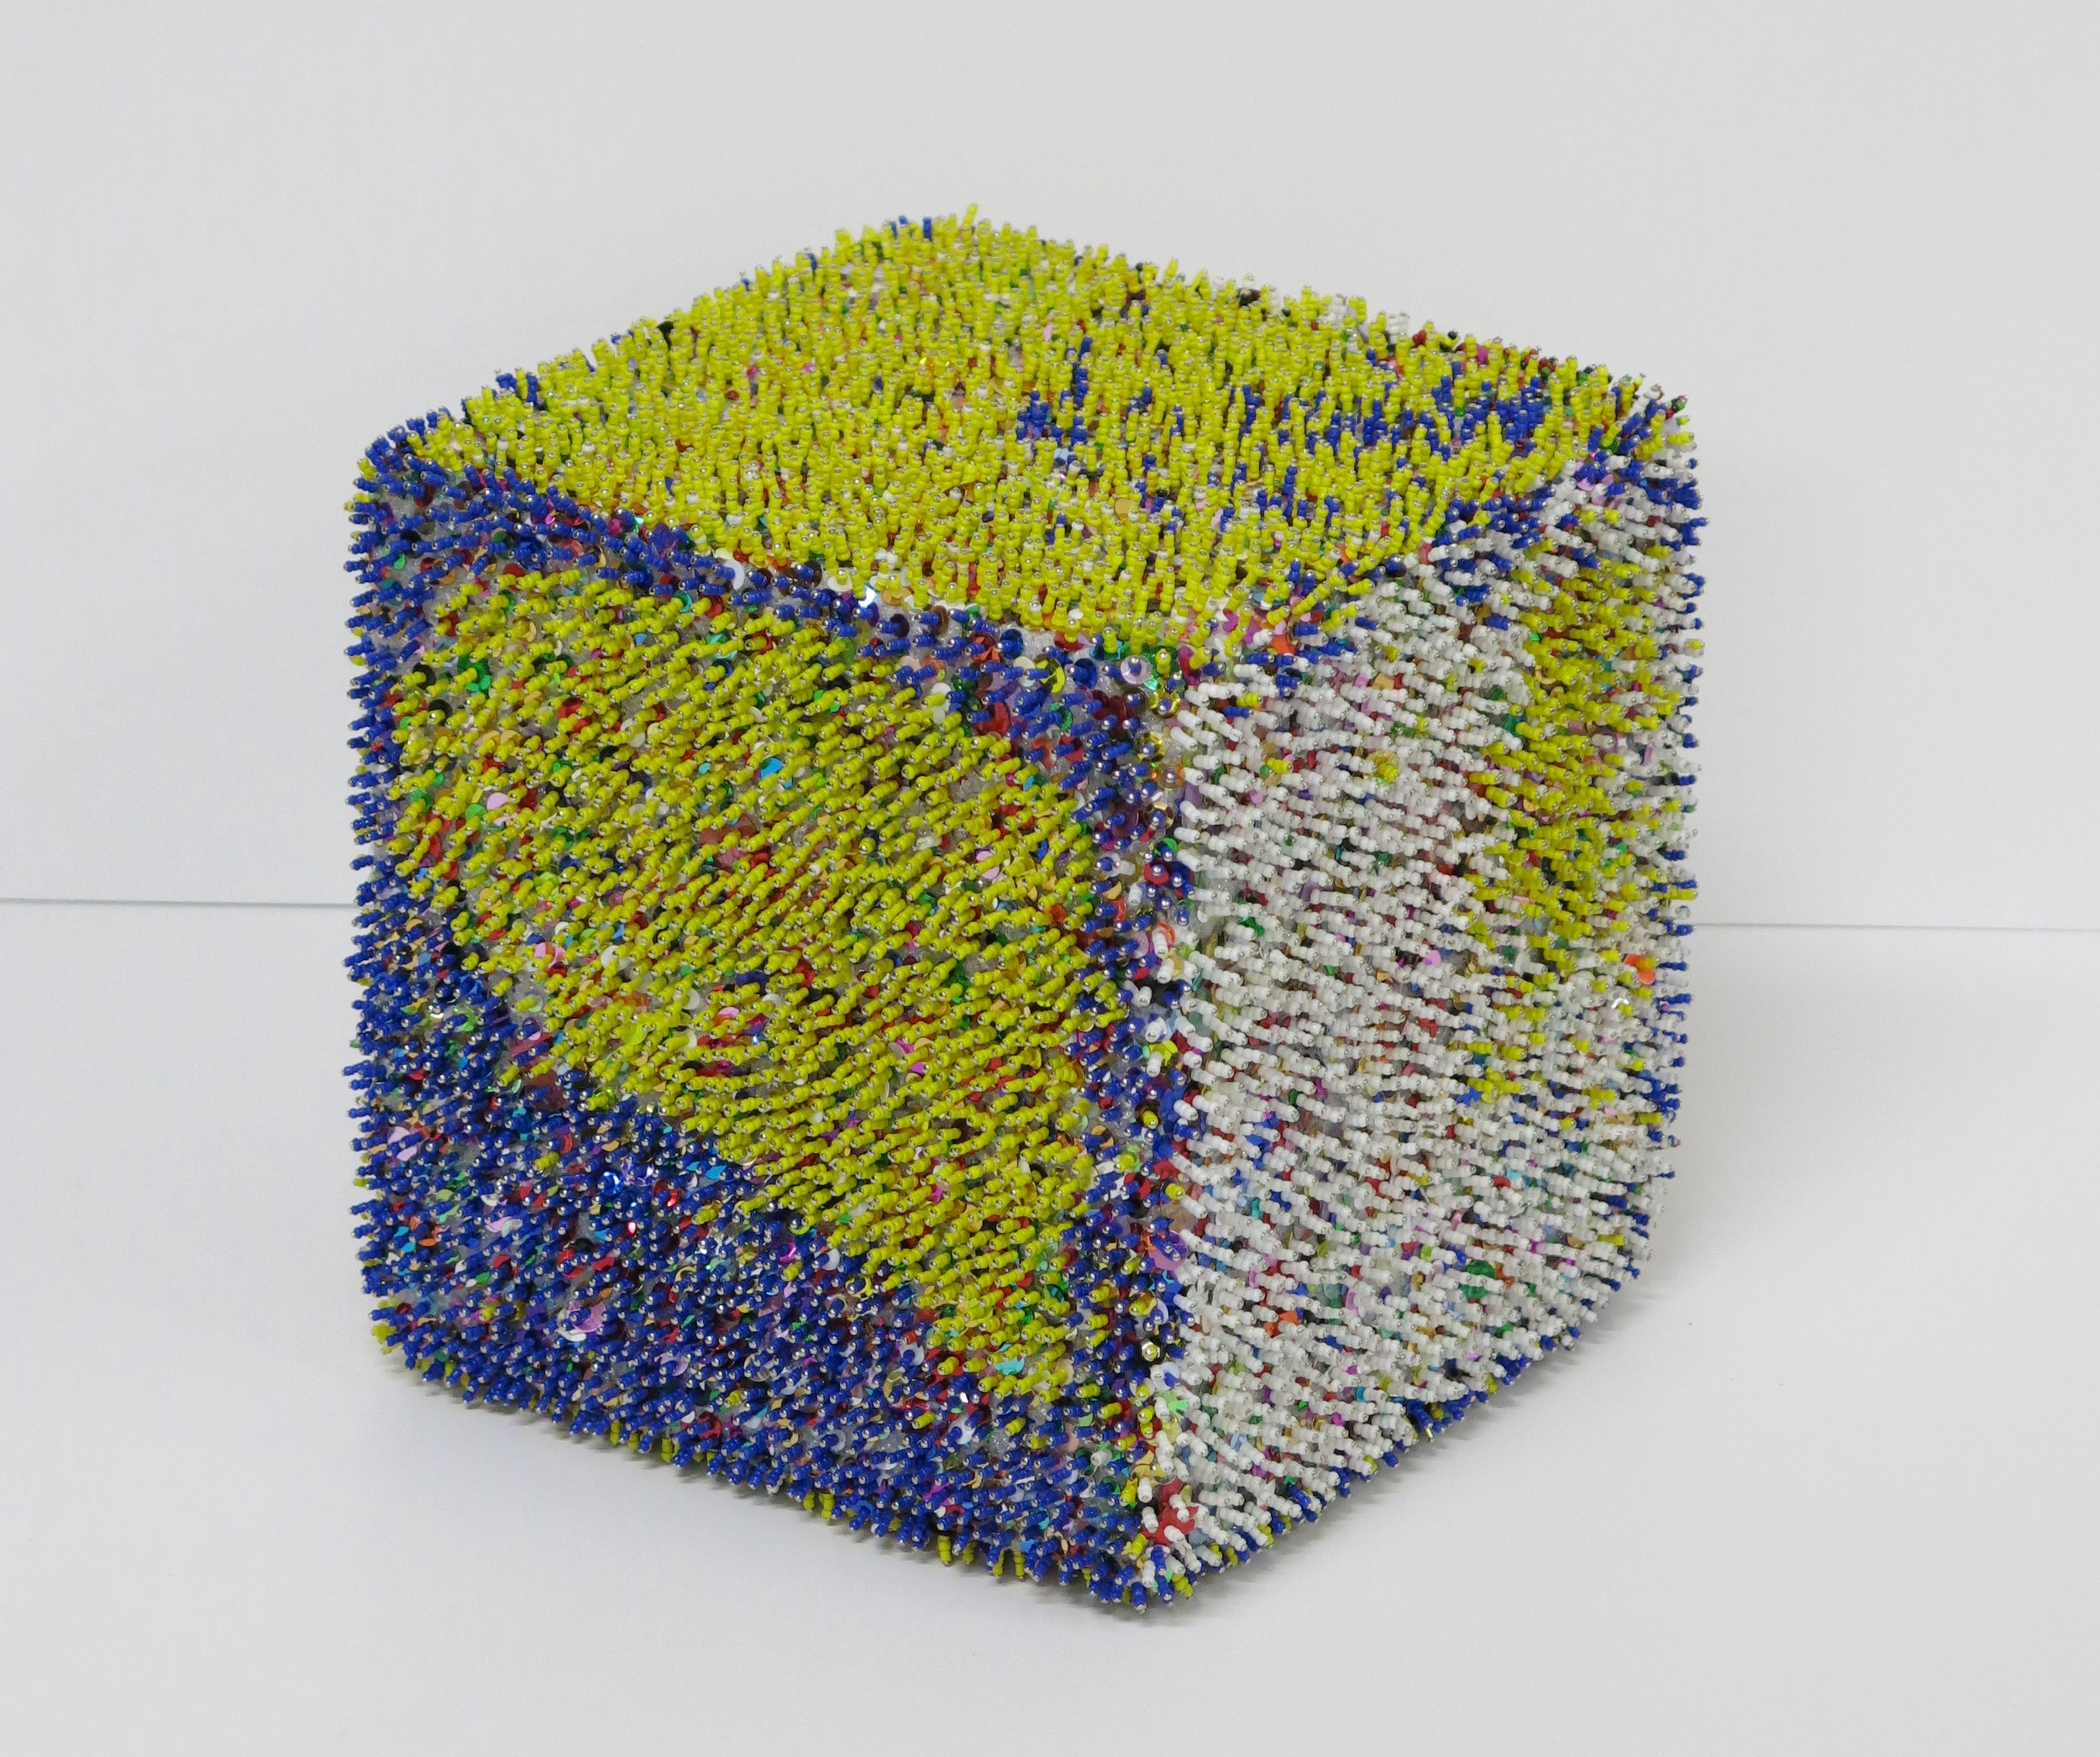 [IMAGE - 12 INCH CUBE COVERED IN COLORFUL SEQUENCE TEXTURE. MONICA VALENTINE, COURTESY CREATIVE GROWTH ARTS CENTER, 2015]